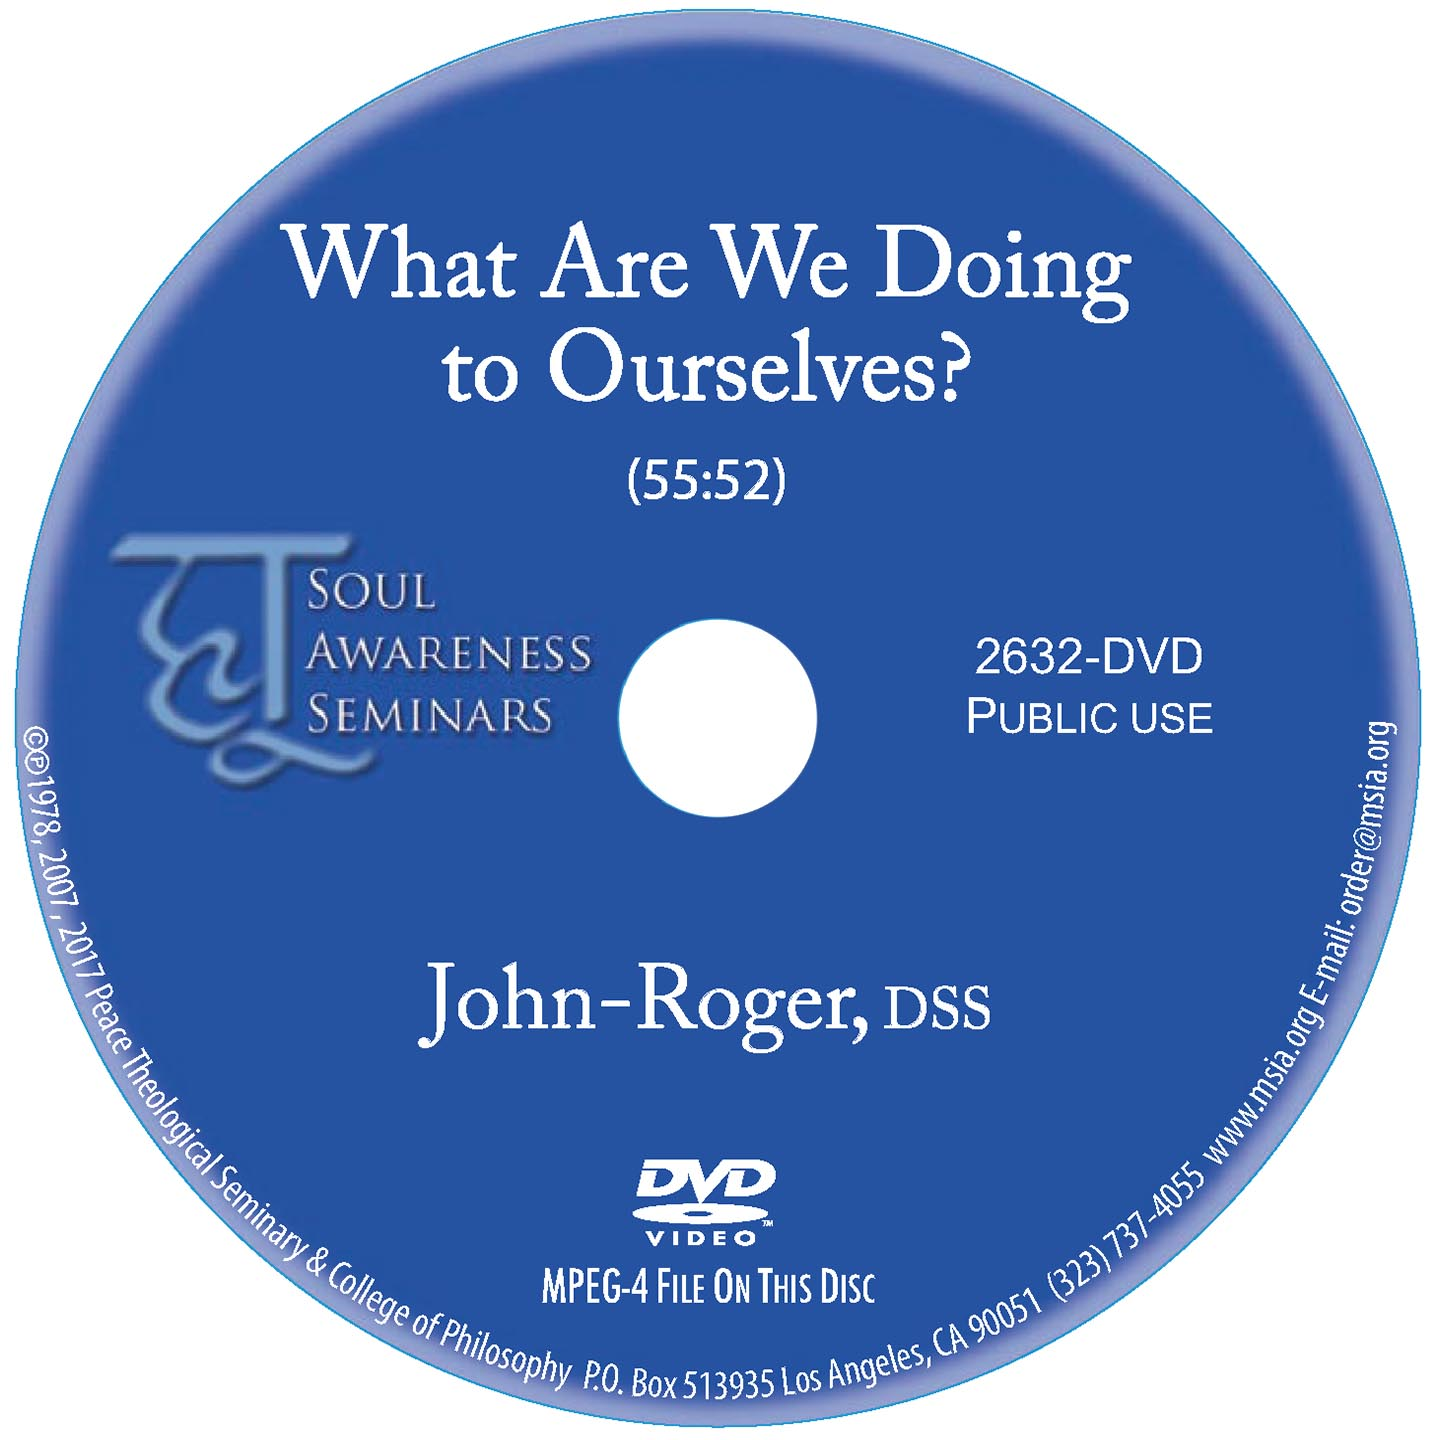 What Are We Doing to Ourselves? DVD